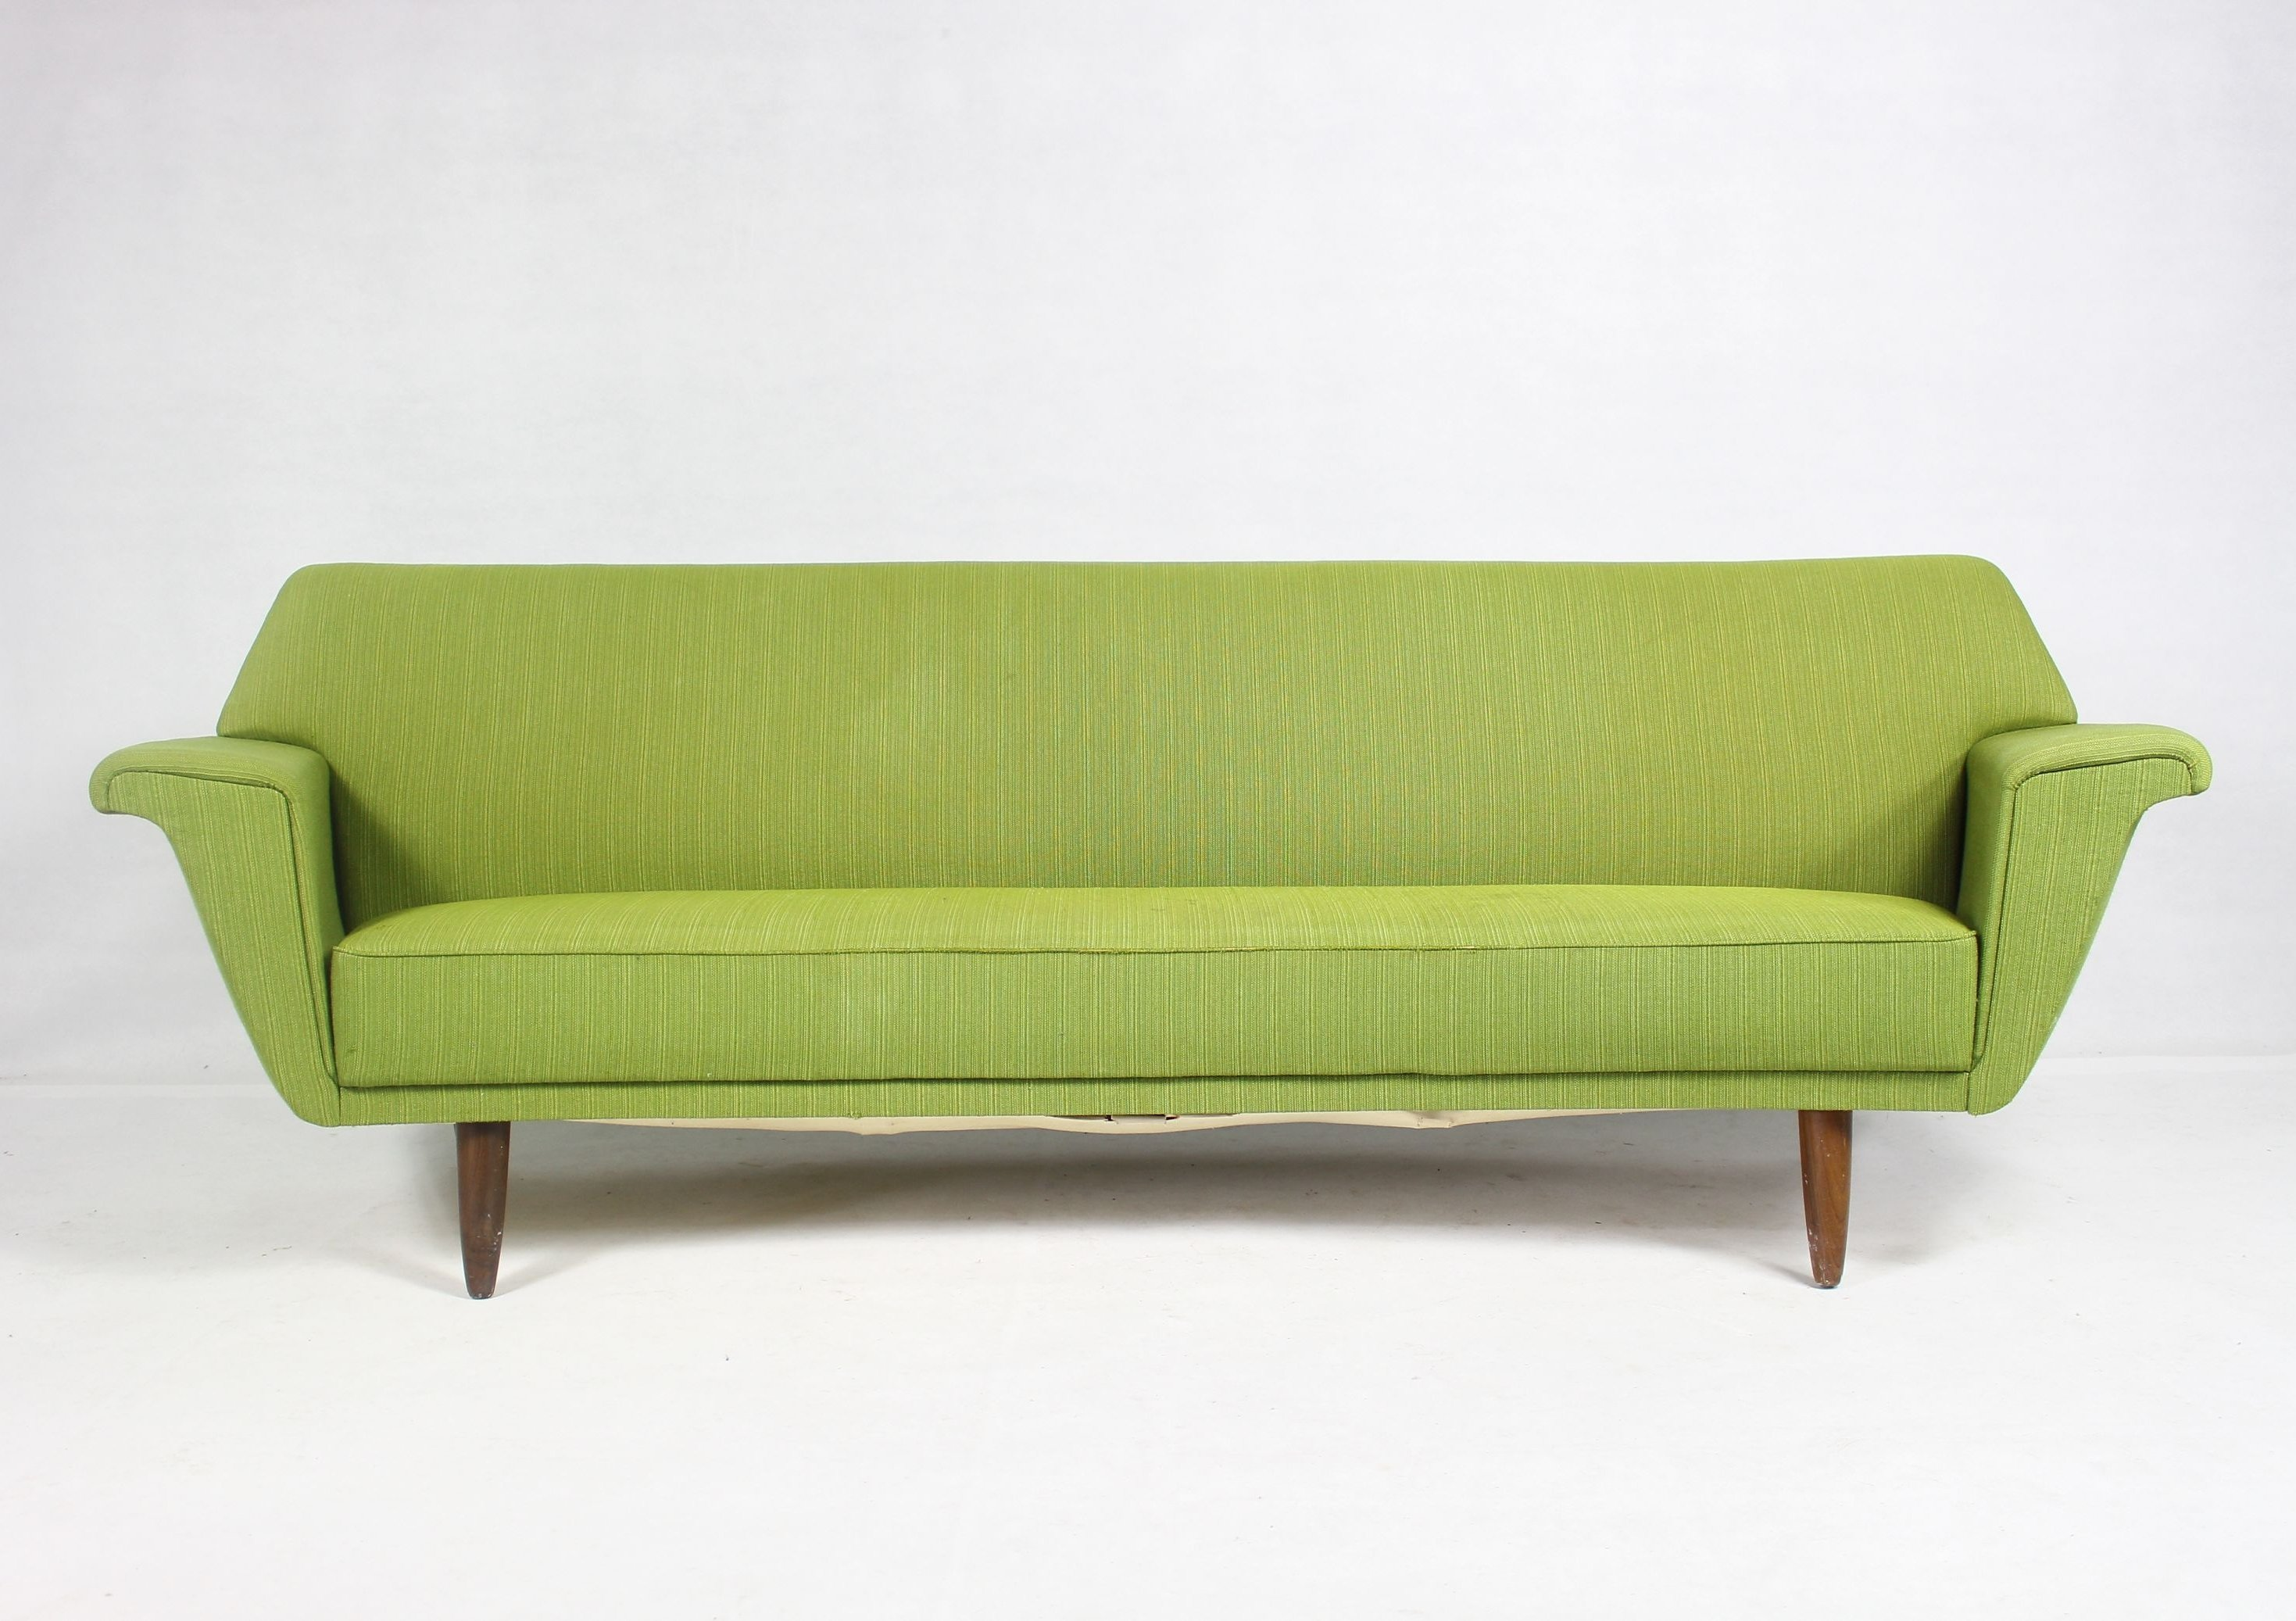 Vintage Danish Sofa By Georg Thams 1960 S 76530